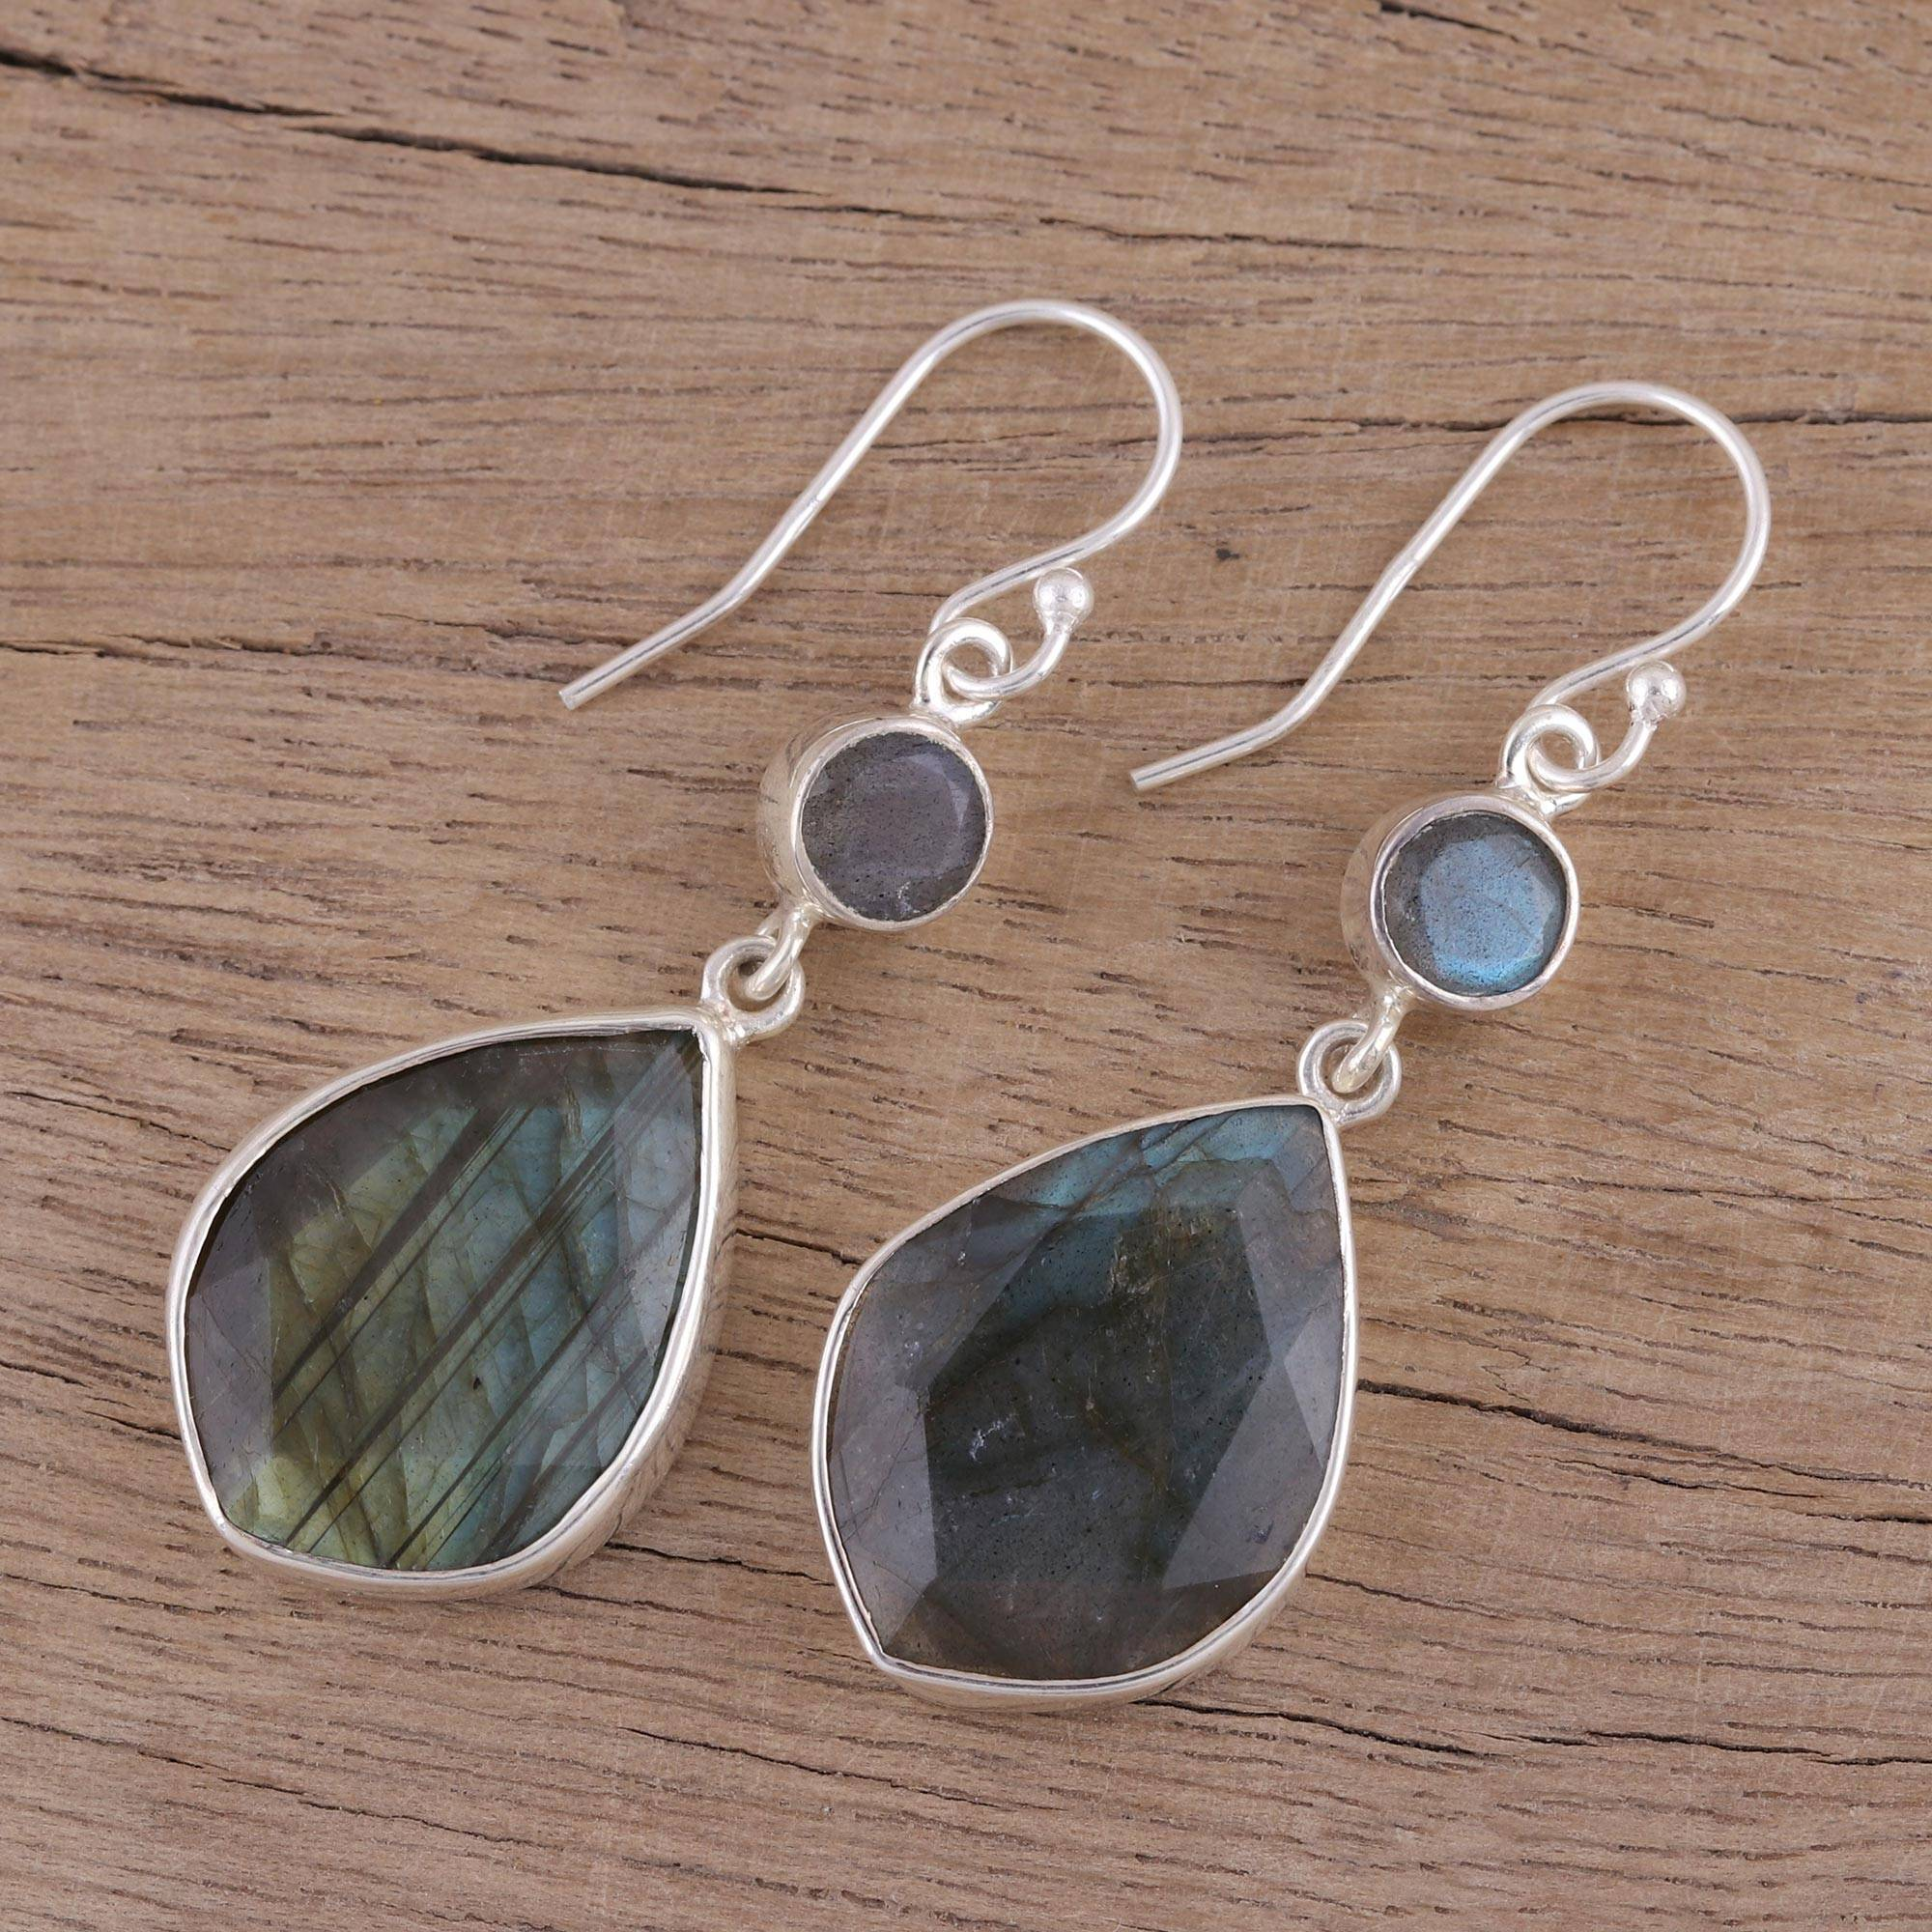 Labradorite dangle earrings, 'Frozen Aurora' Sterling Silver gemstone drop earrings Jewelry Trends